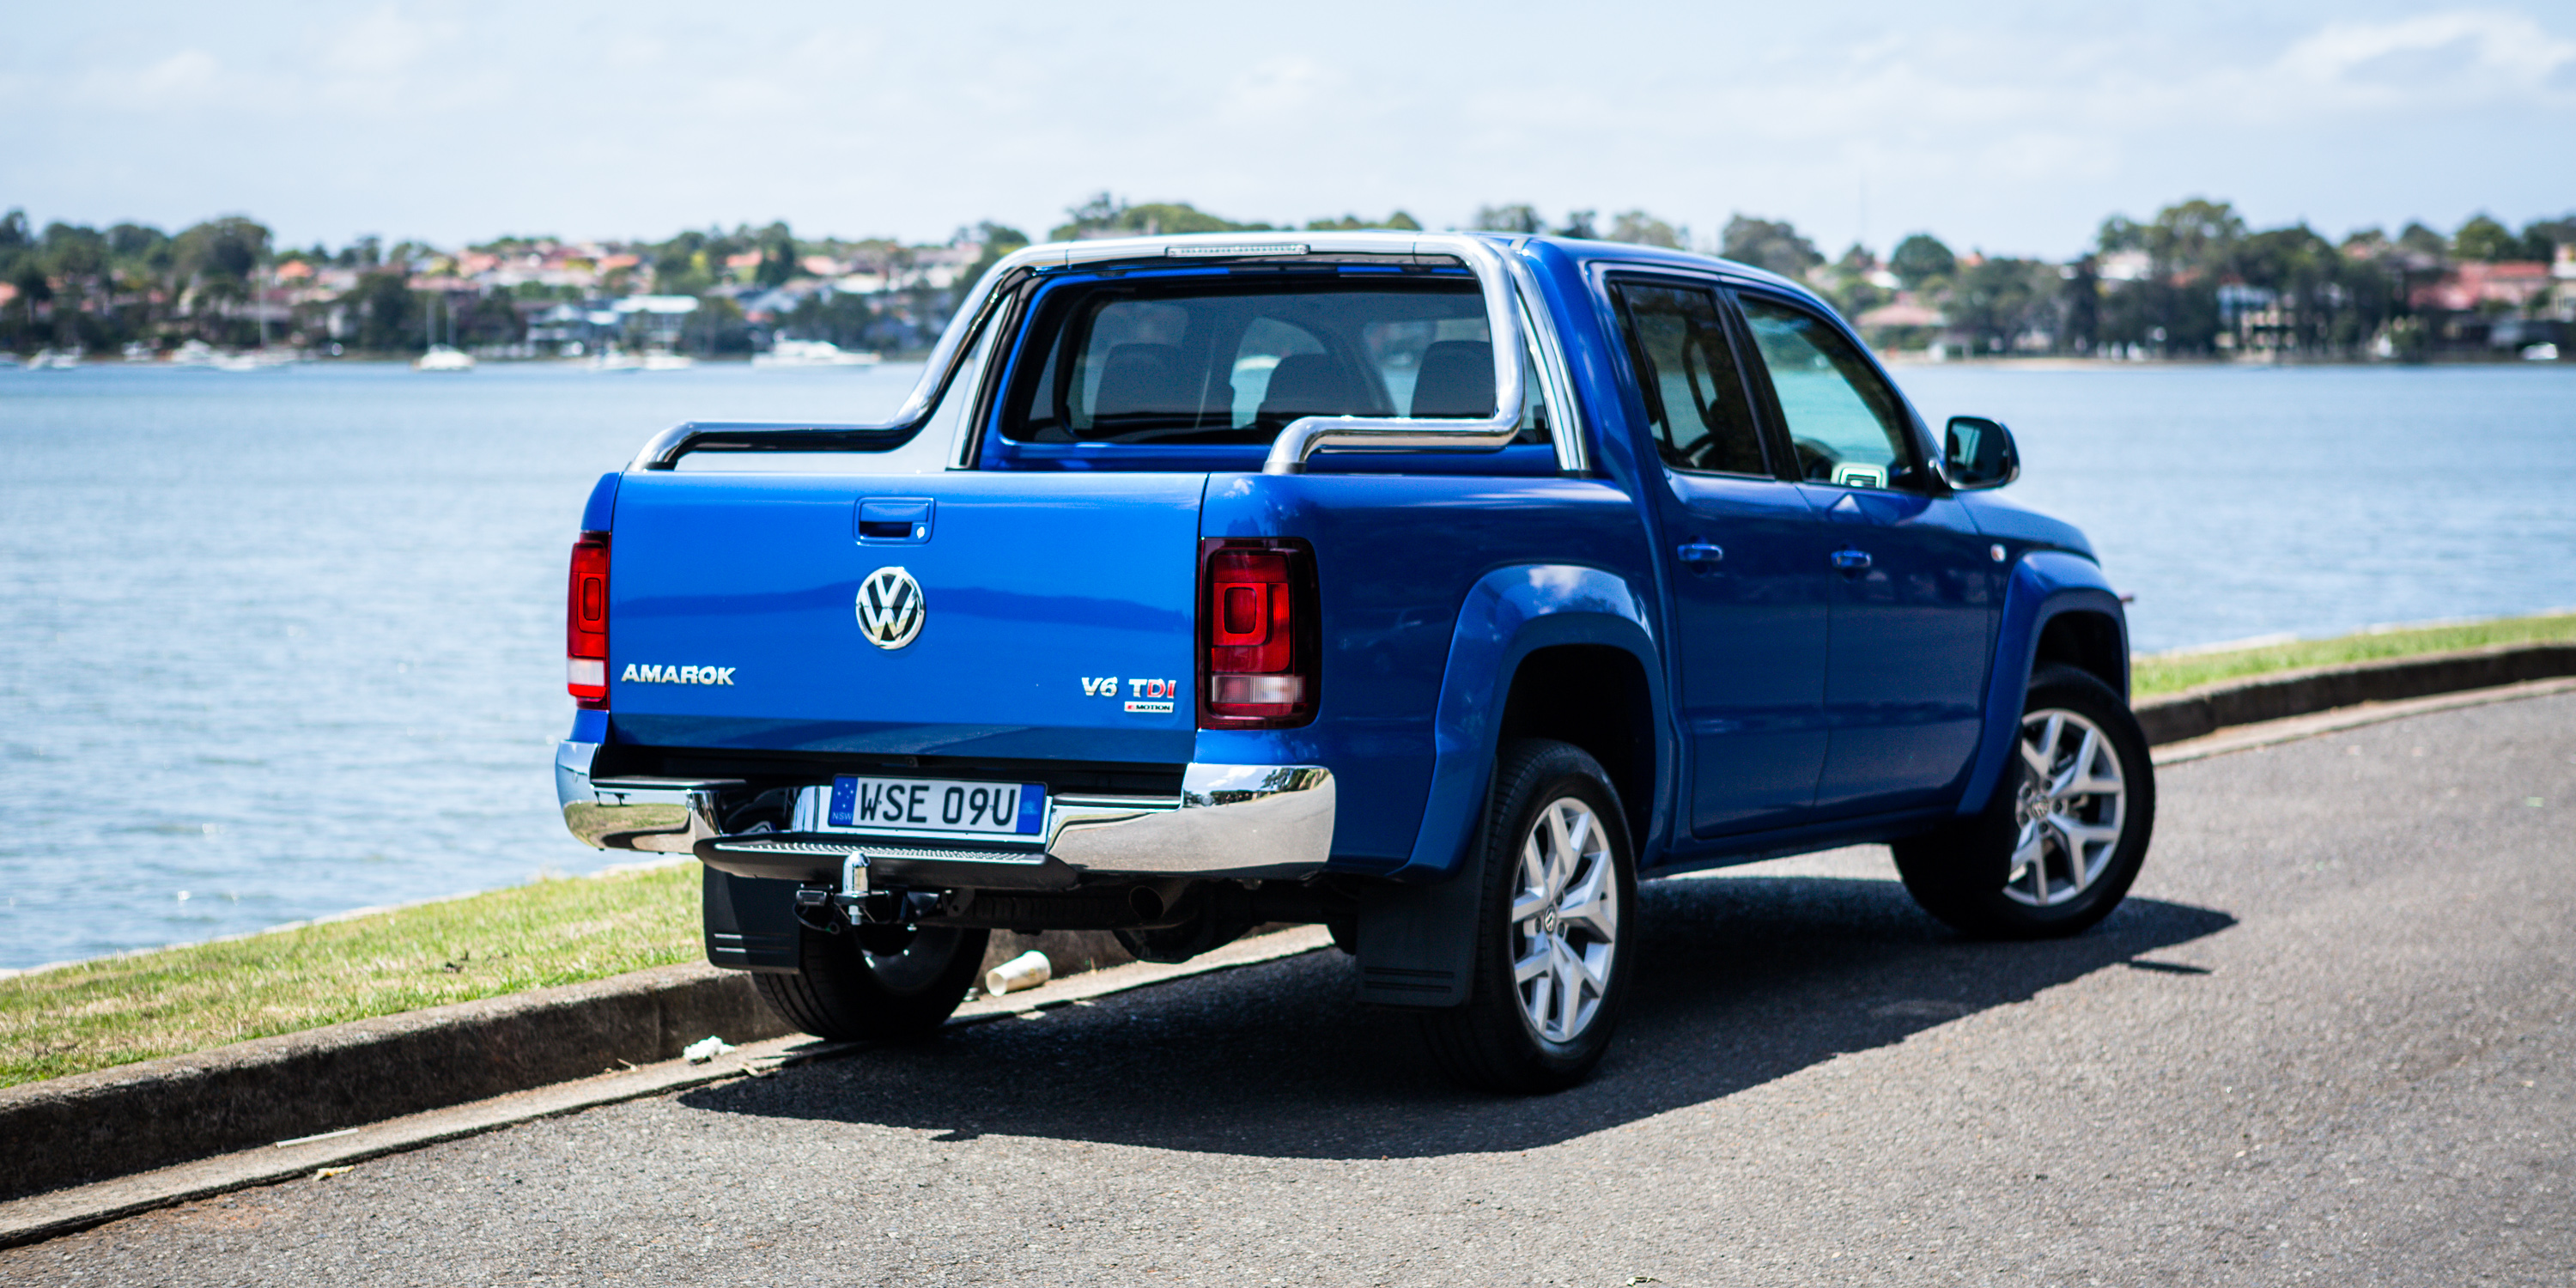 2017 Volkswagen Amarok V6 Ultimate review - photos | CarAdvice